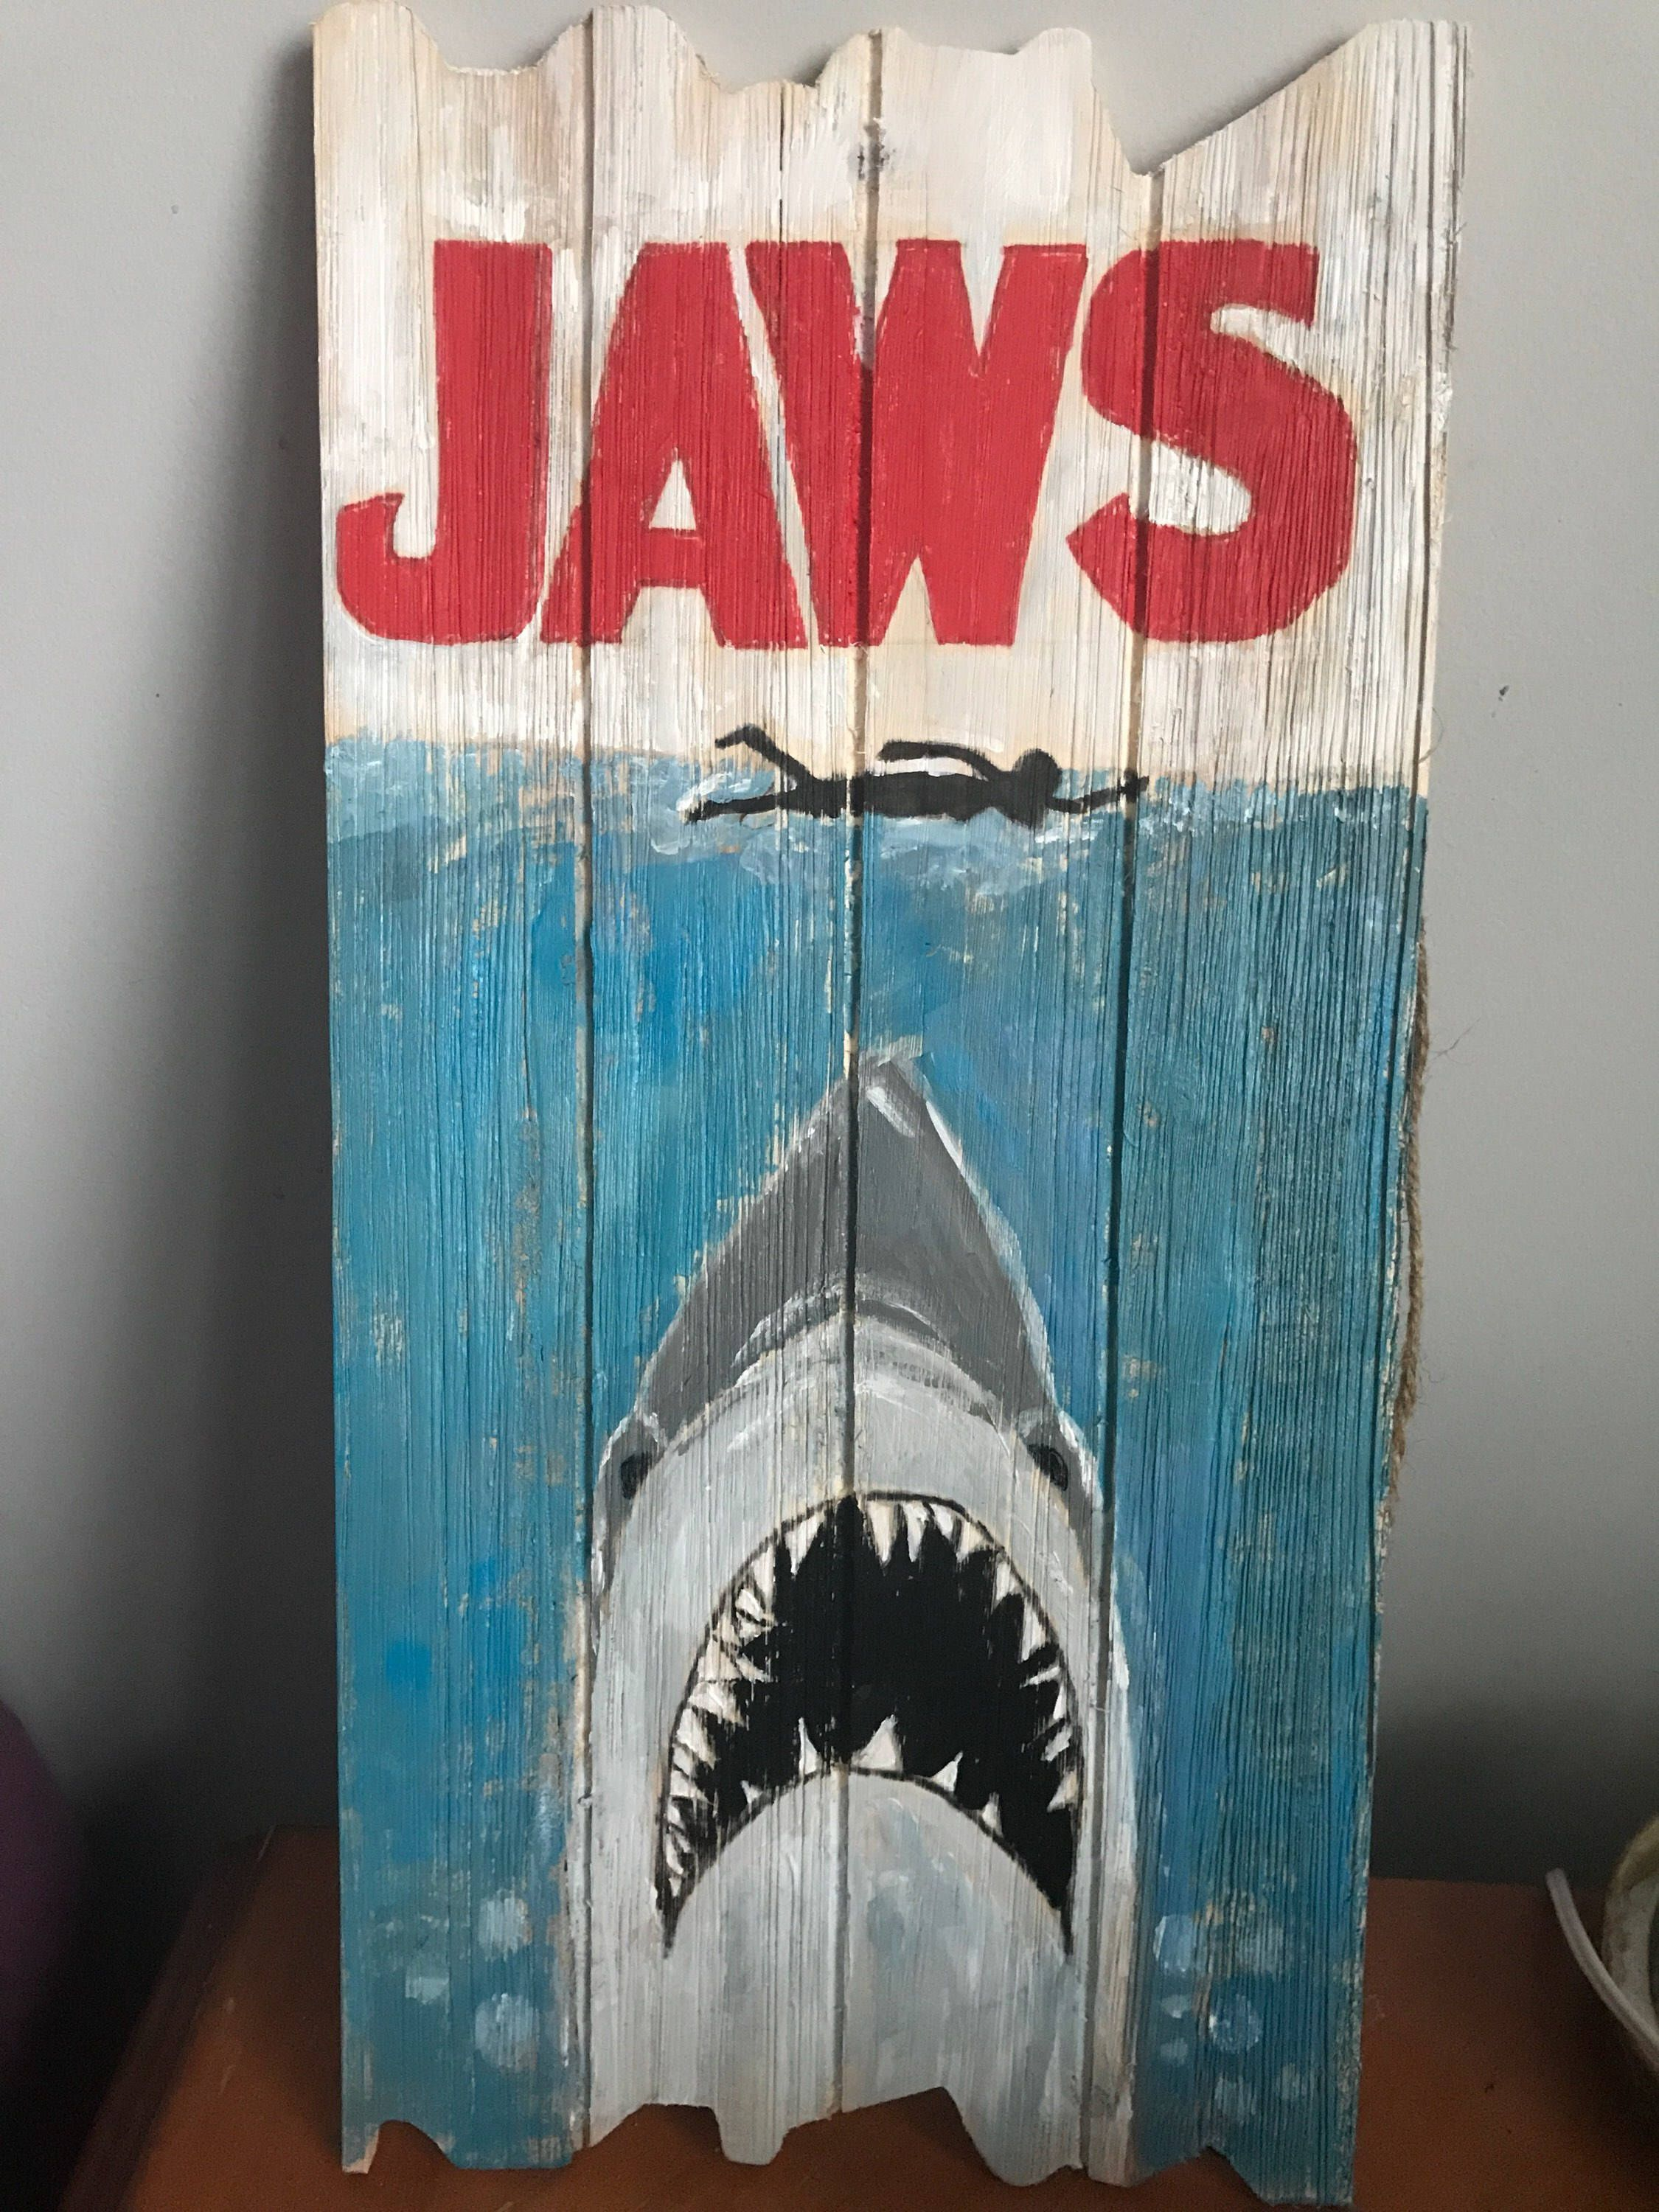 A Personal Favorite From My Etsy Shop Https Www Etsy Com Listing 539997341 Jaws Wooden Sign 189 X 96 X 03 Wooden Signs Surfer Room Decor Shark Decor